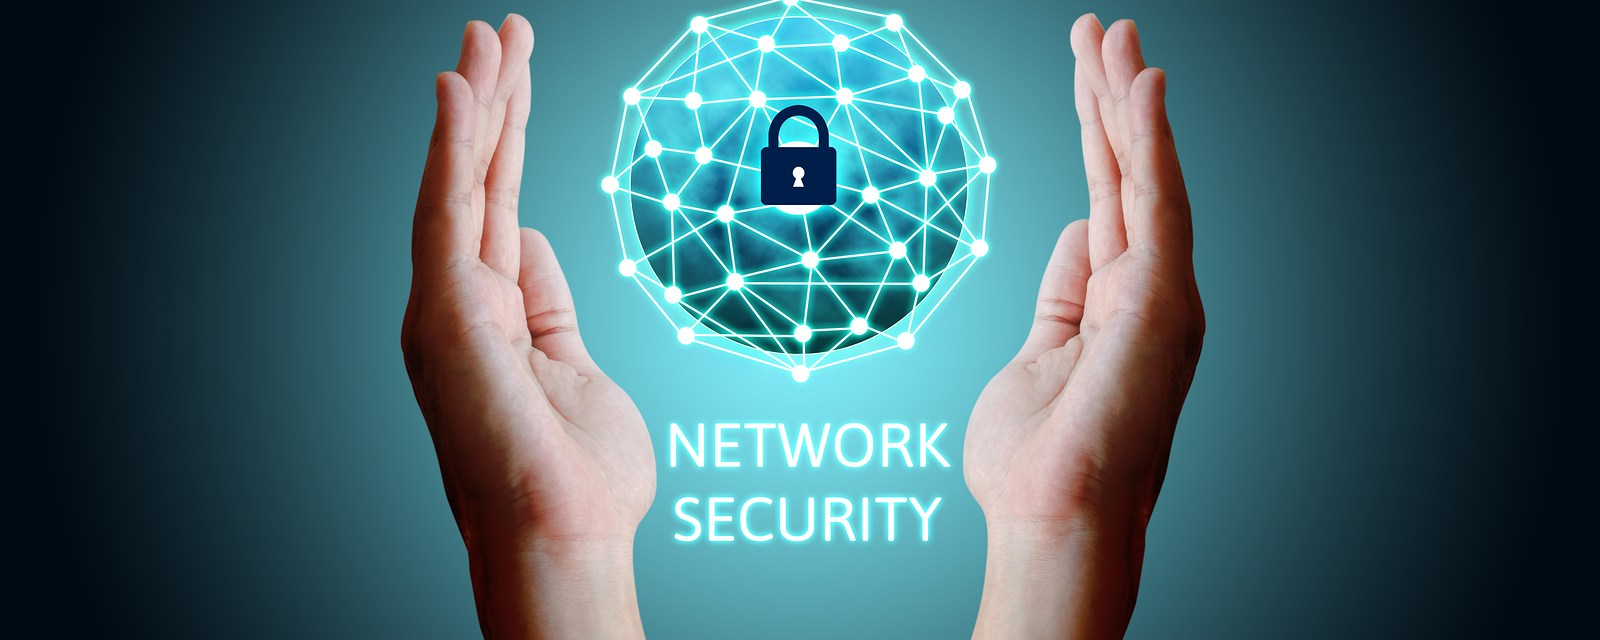 Cyber security network concept holding global network security